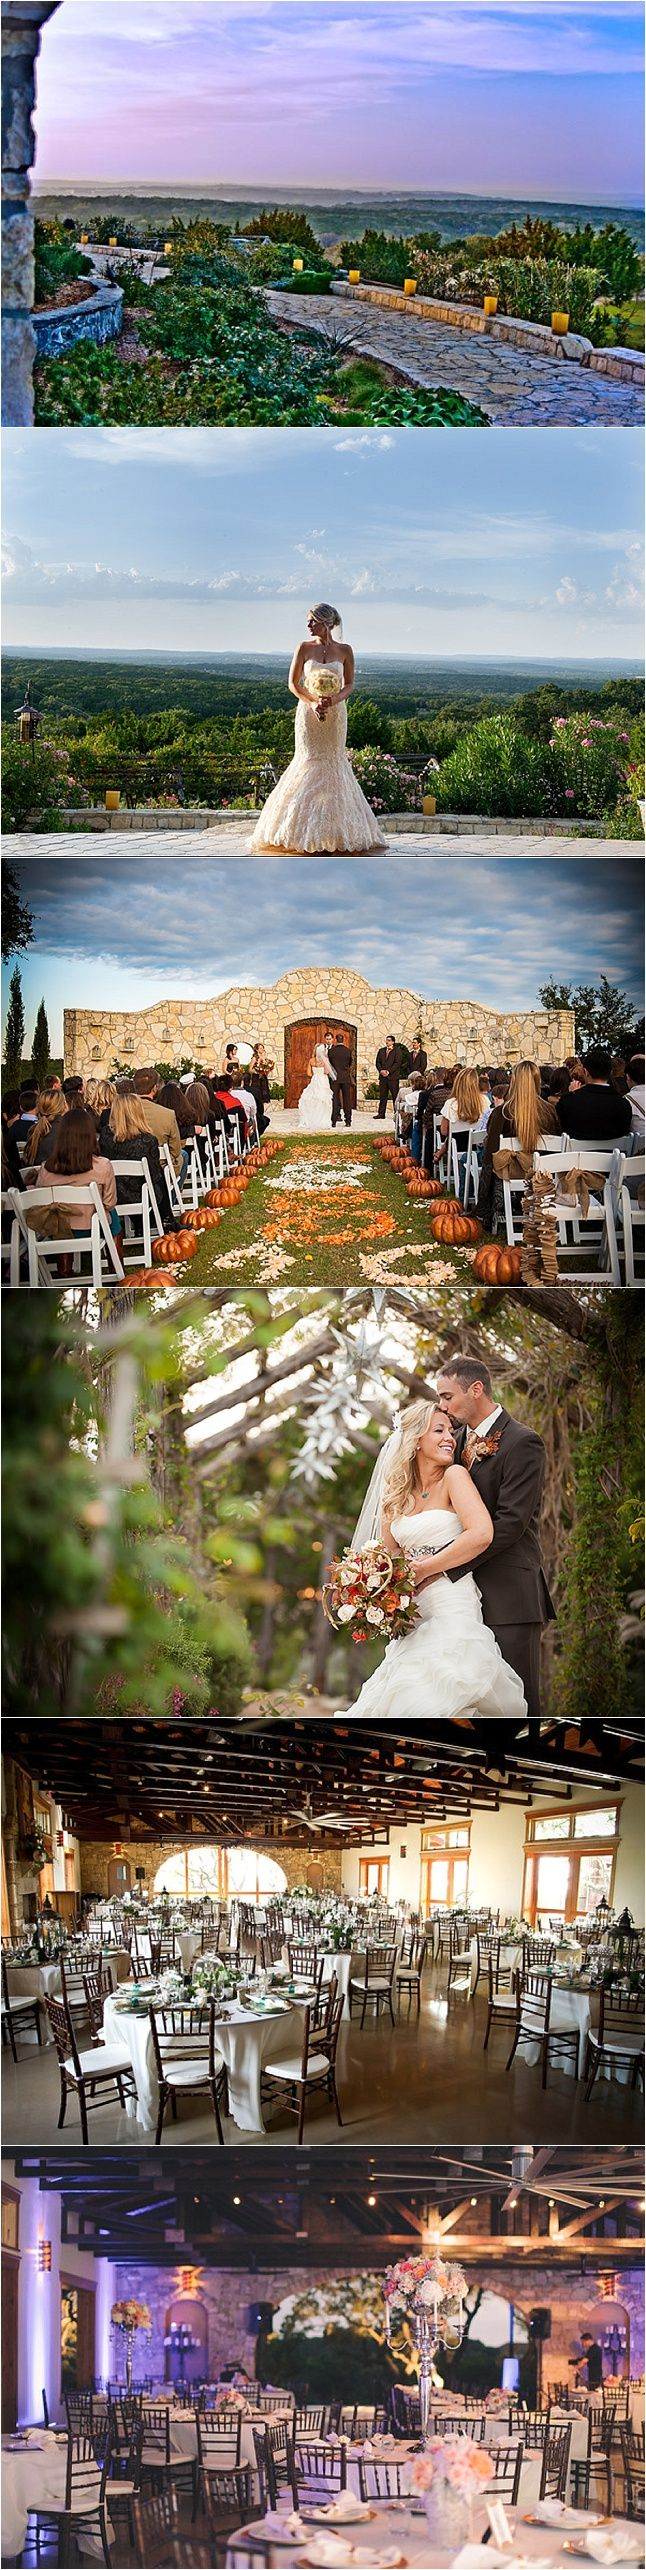 Texas Hill Country: Rancho Mirando. Fischer, TX. via San Antonio Weddings  www.DebbieKrug.com